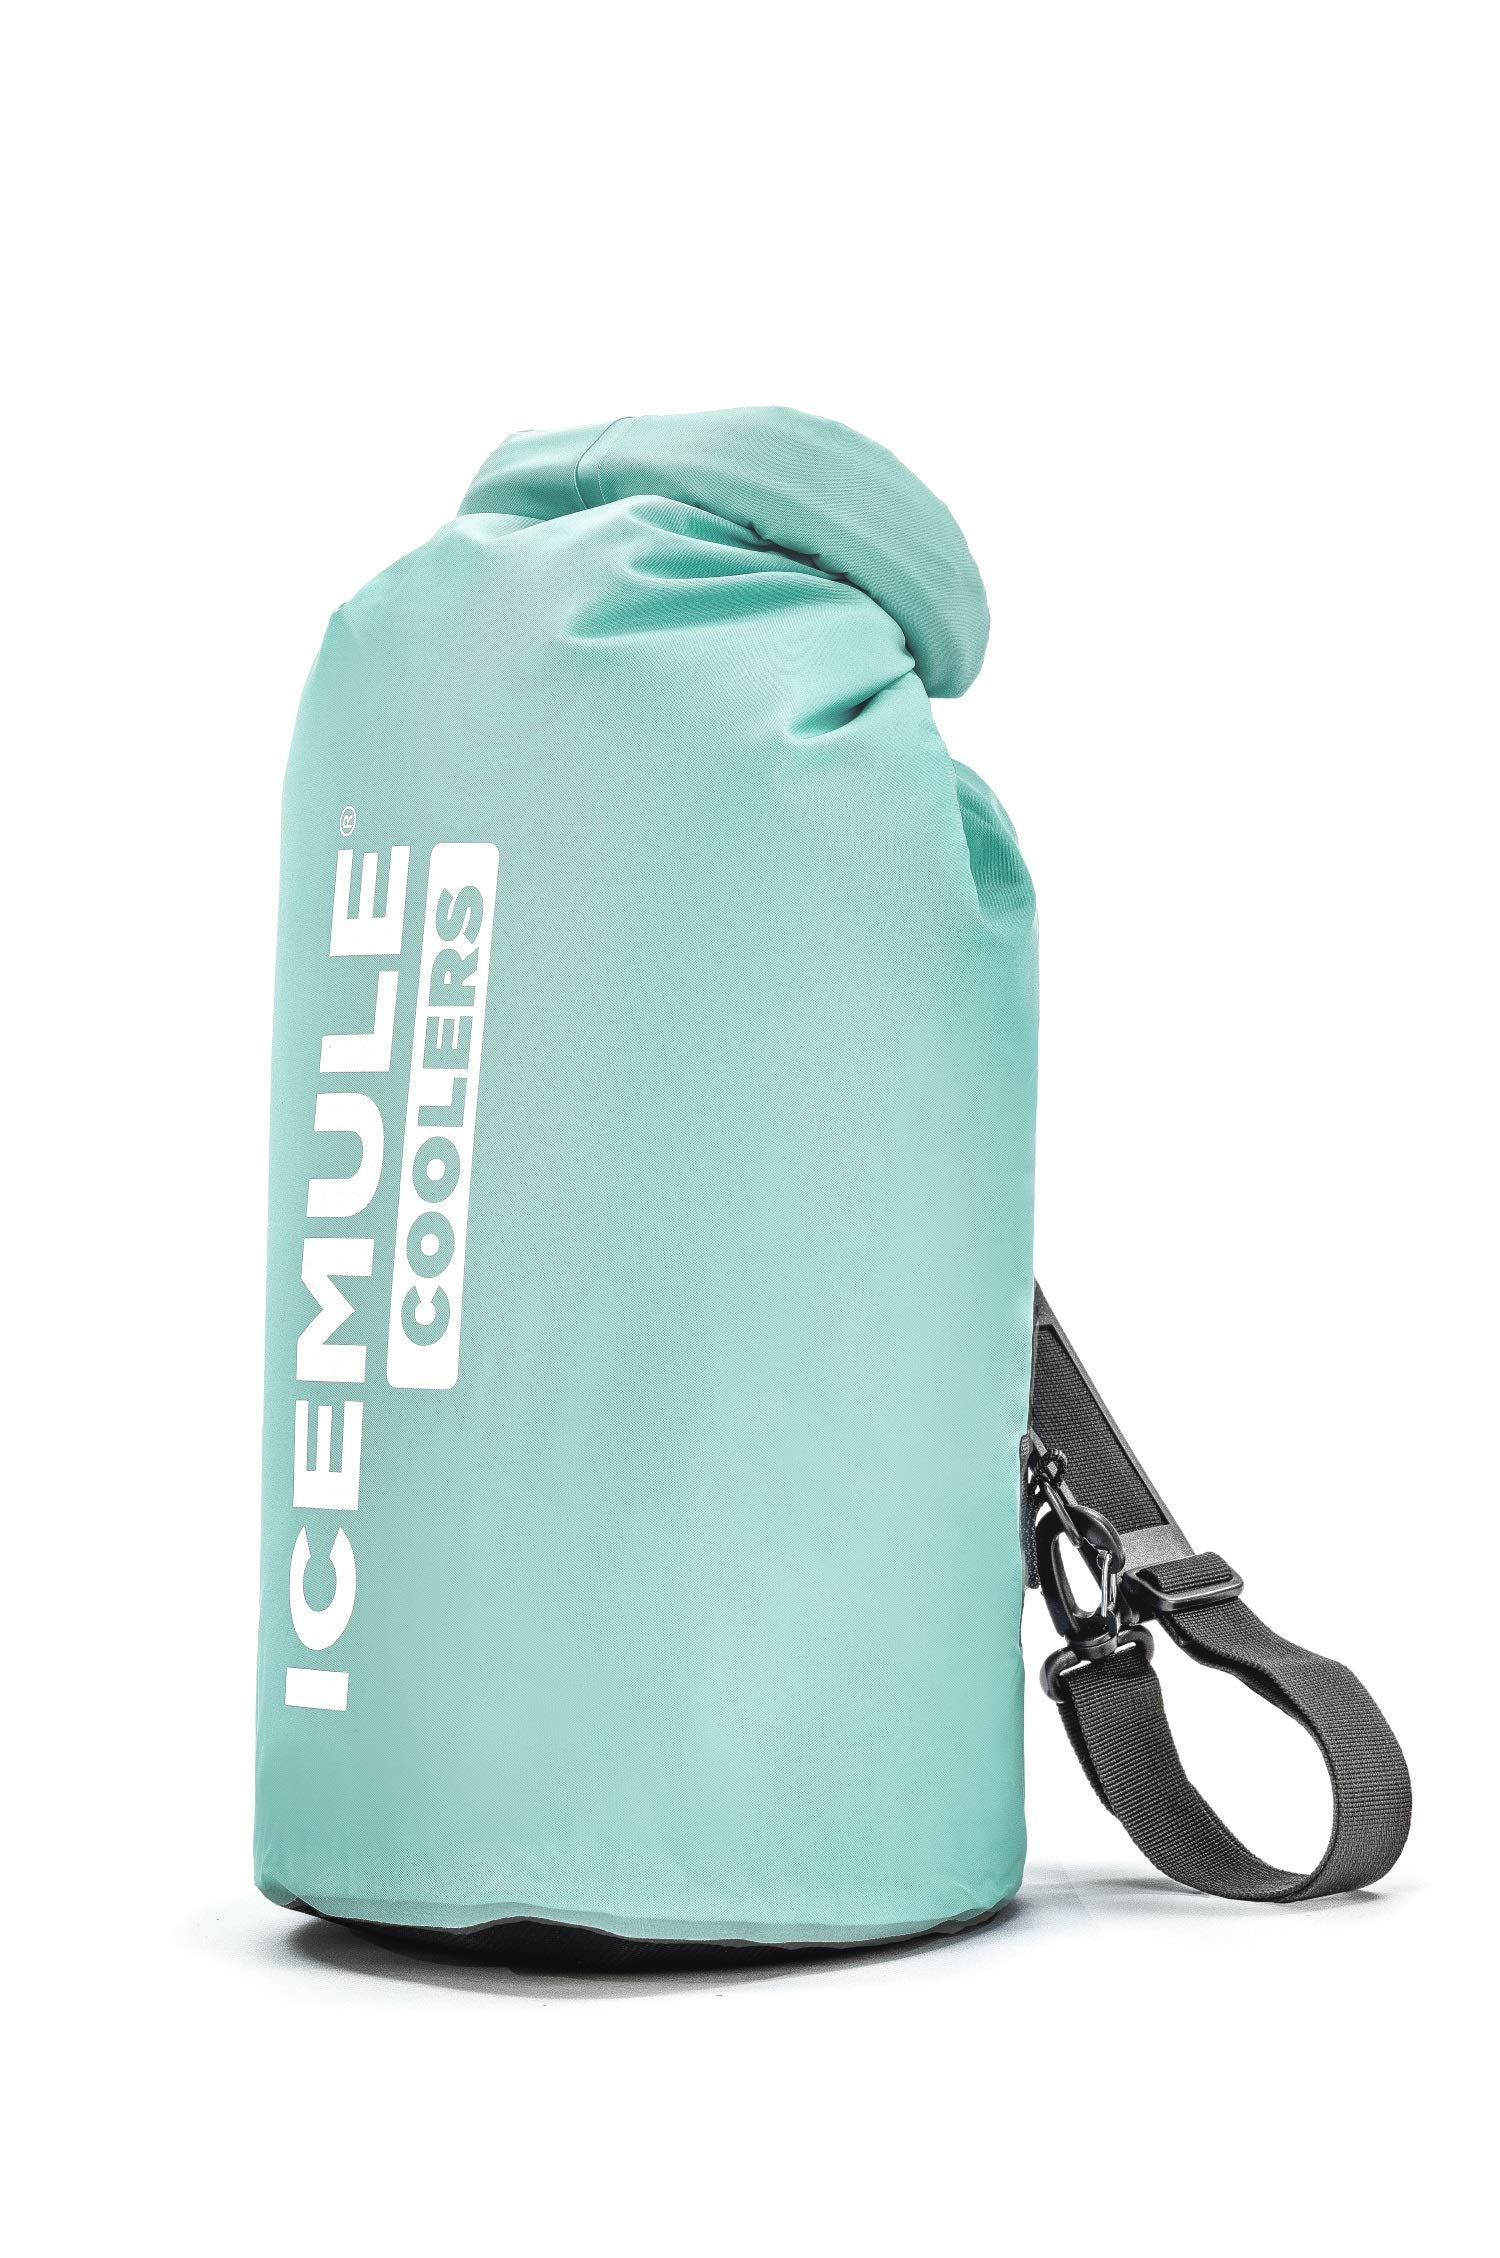 IceMule Classic Insulated Backpack Cooler Bag - Hands-Free, Collapsible, and Waterproof, This Portable Cooler is an Ideal Sling Backpack for Hiking, The Beach, Picnics and Camping-Medium, Seafoam by IceMule